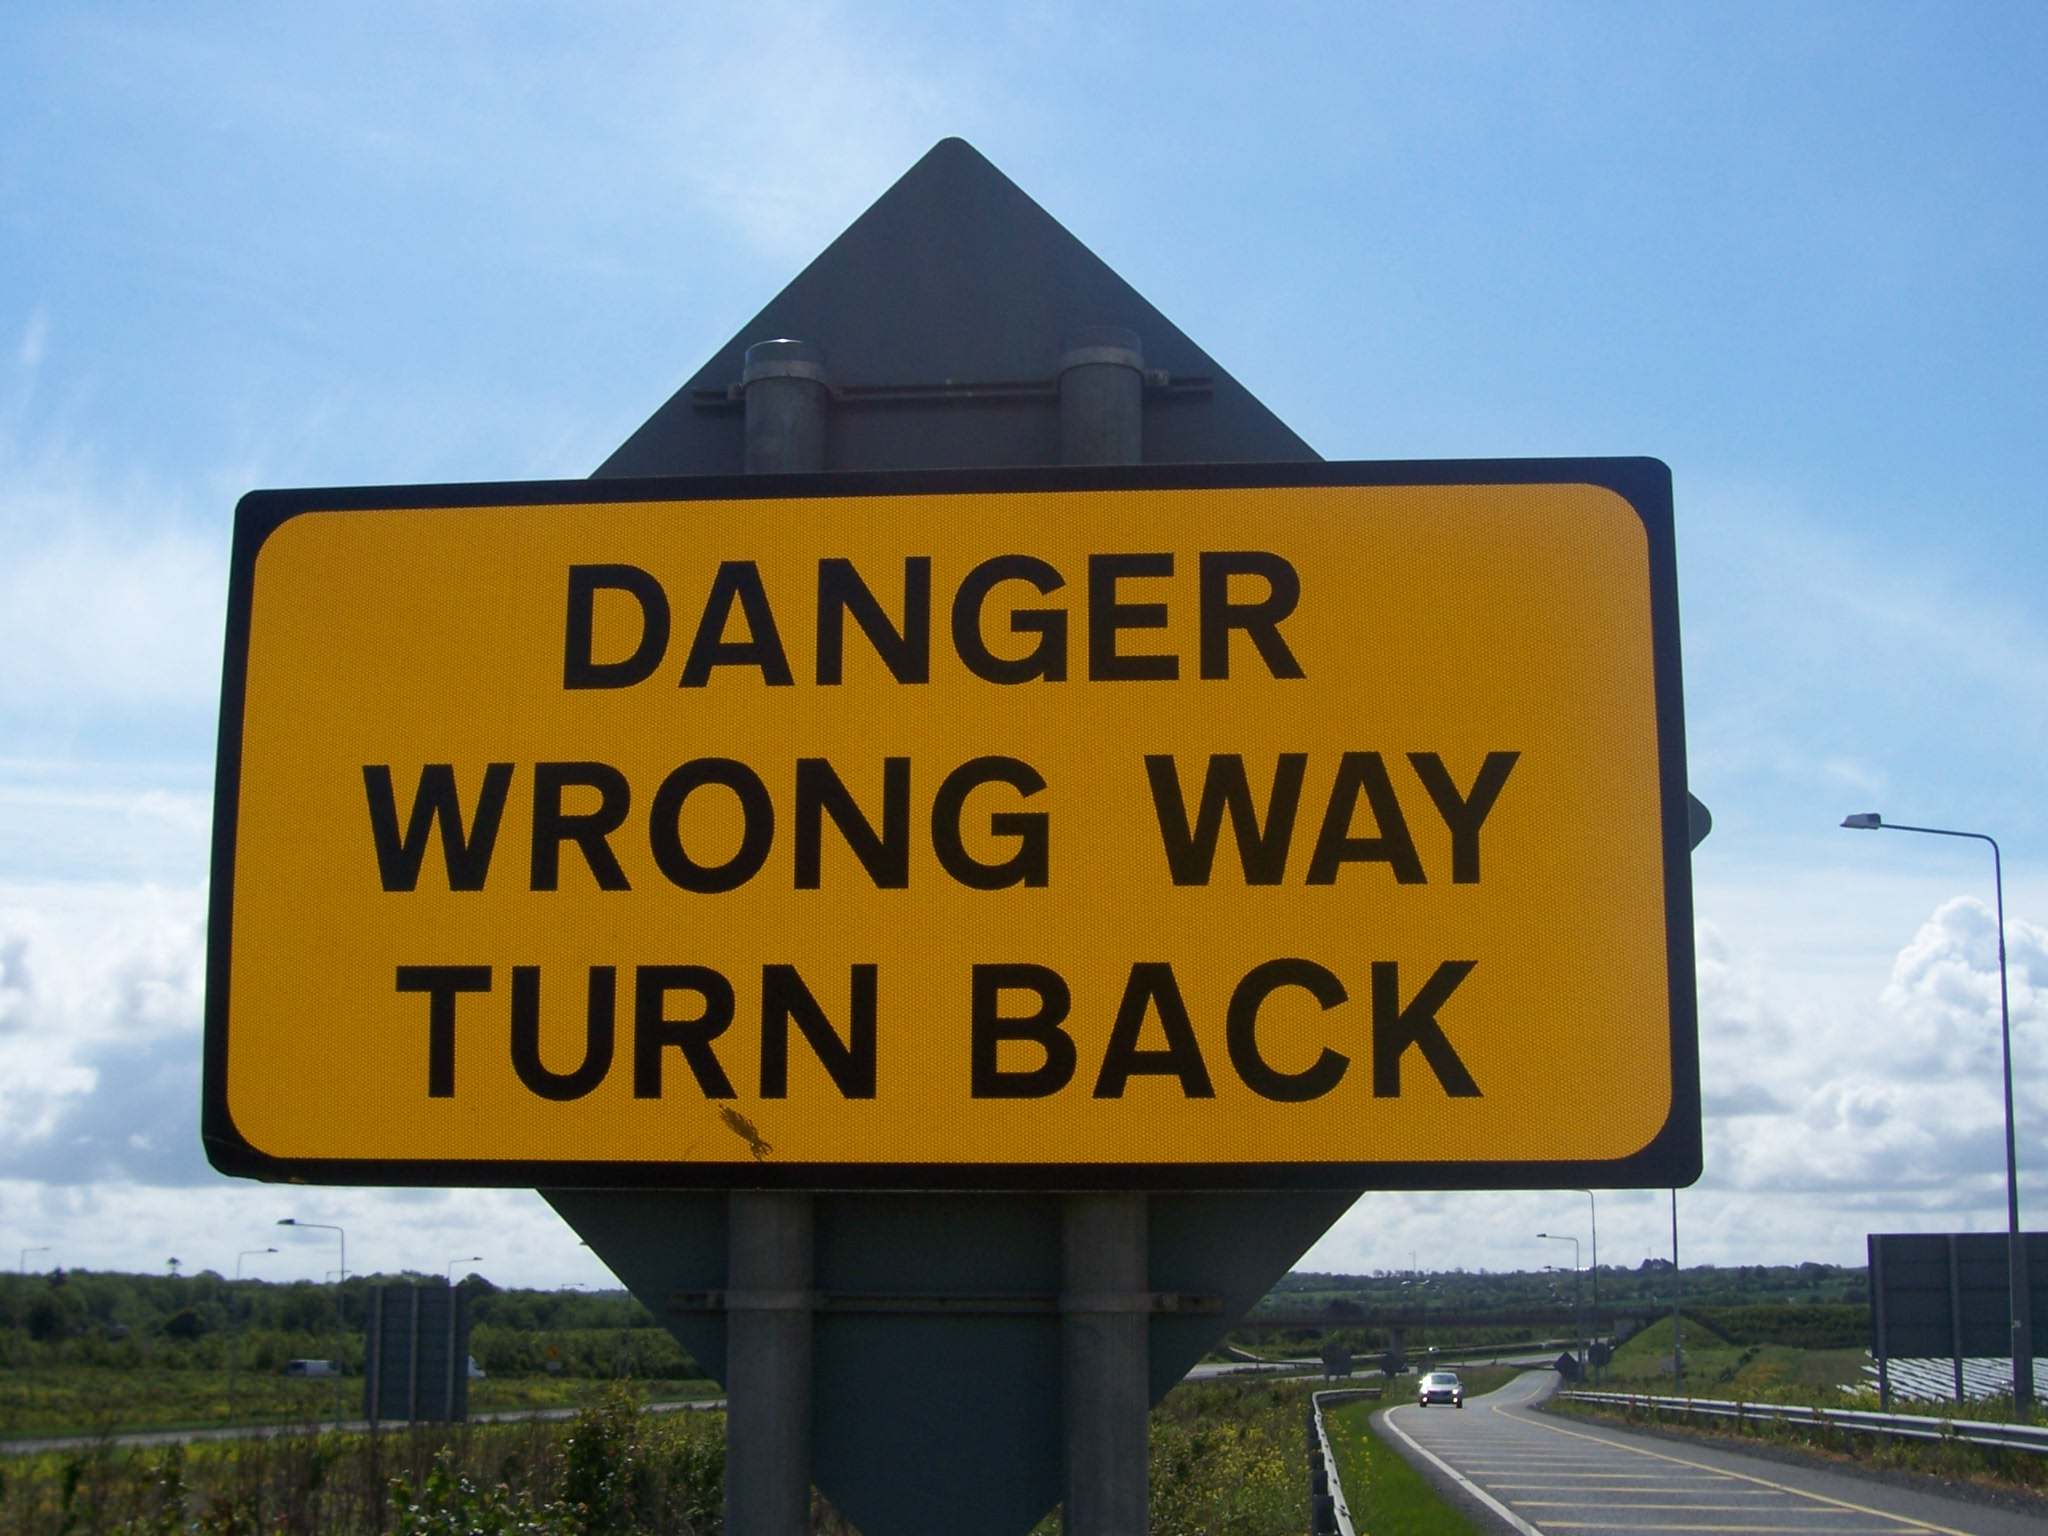 Danger. Wrong Way. Turn Back.